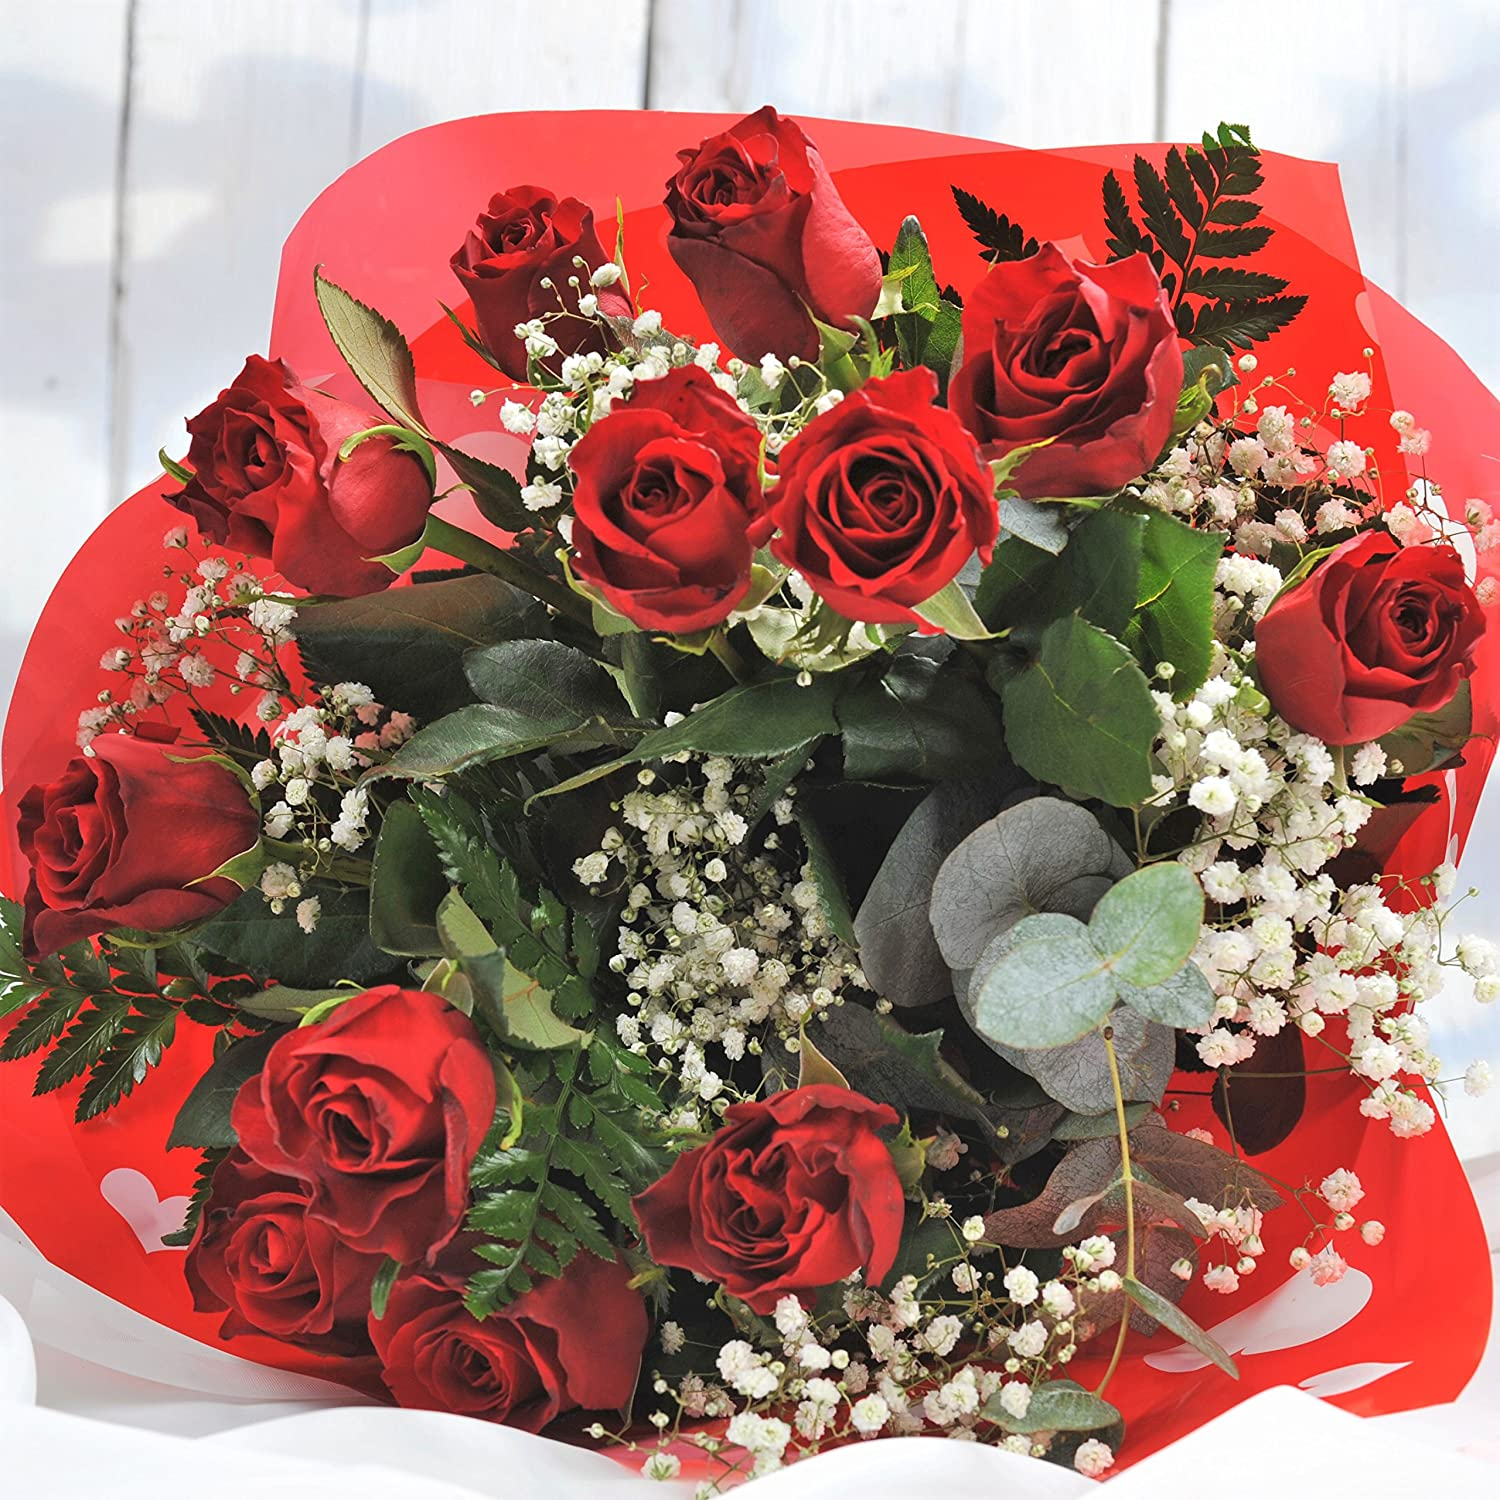 ⤠Romantic Luxury Flowers - Large Red Rose Bouquet Delivered - FREE UK Next Day Delivery in 1hr Window 7 Days a Week - Send a Surprise Bunch of 12 Premium Red Roses Delivered Anywhere in the UK Homeland Florists